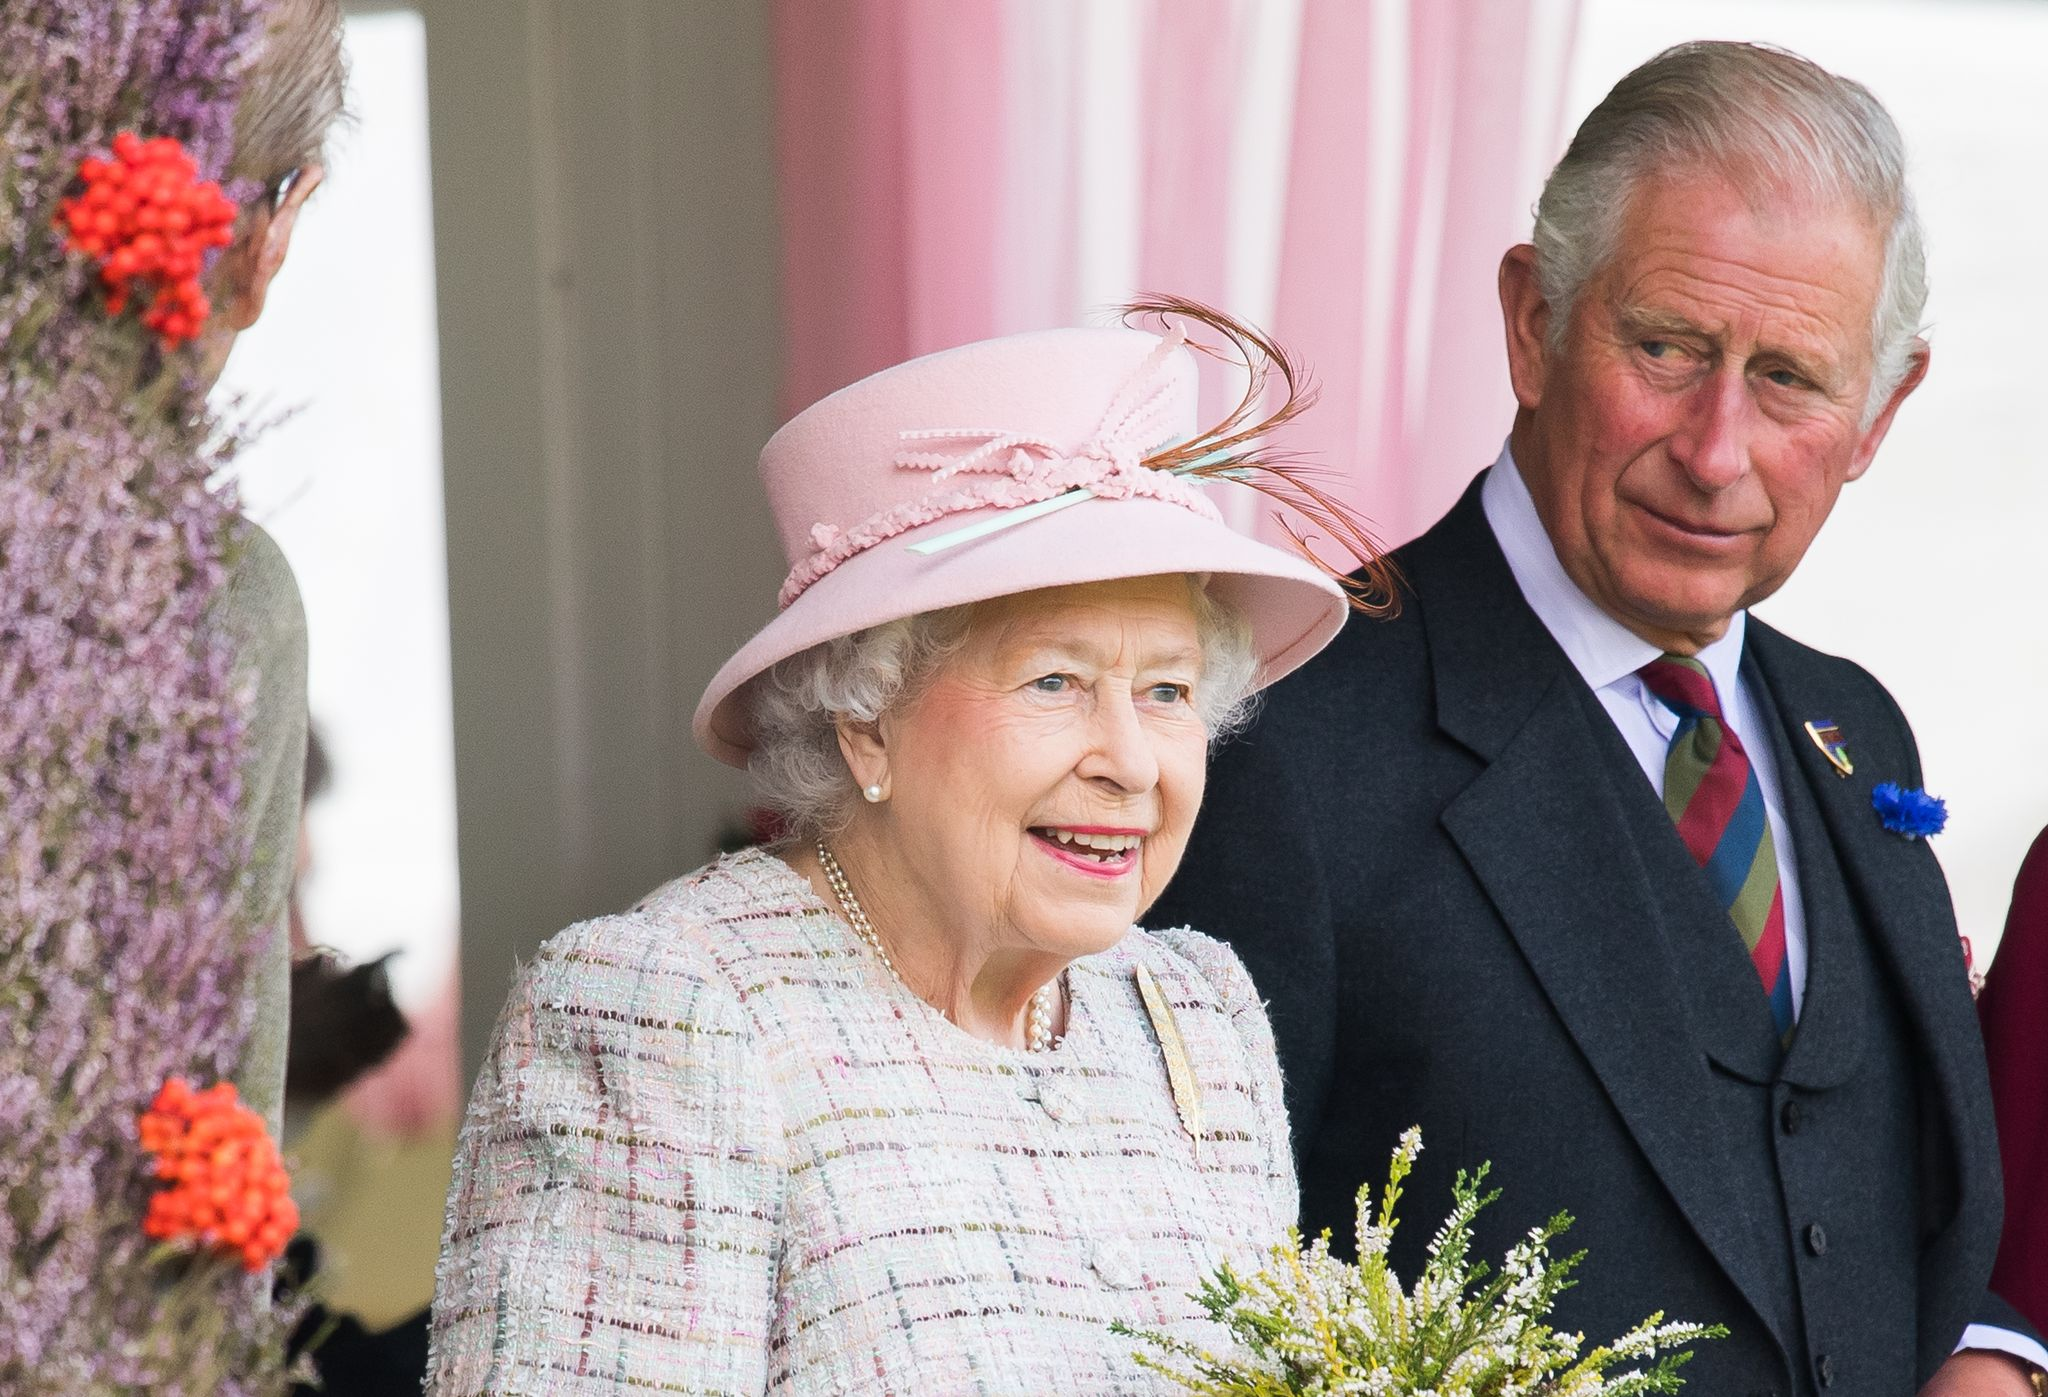 Queen Elizabeth II and Prince Charles at the 2017 Braemar Highland Gathering in Braemar, Scotland | Source: Getty Images